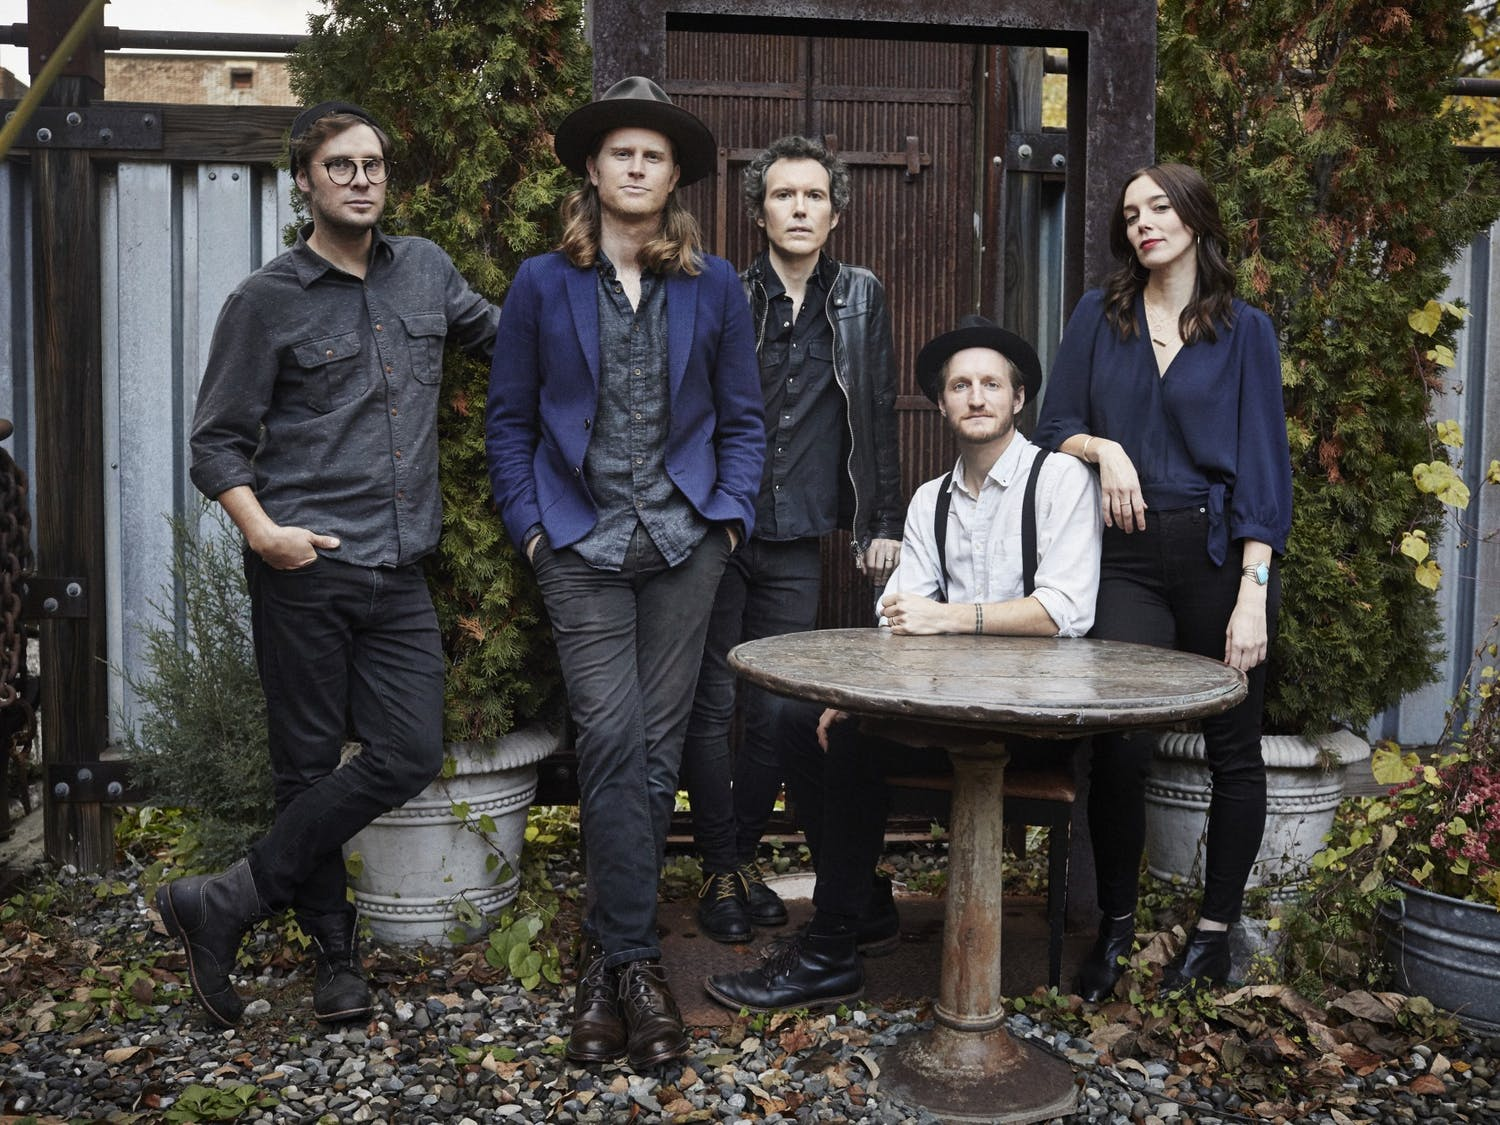 Jeremiah Fraites, co-founder and drummer of The Lumineers, spoke to The Spectrum ahead of their Feb. 26 show at KeyBank Center.